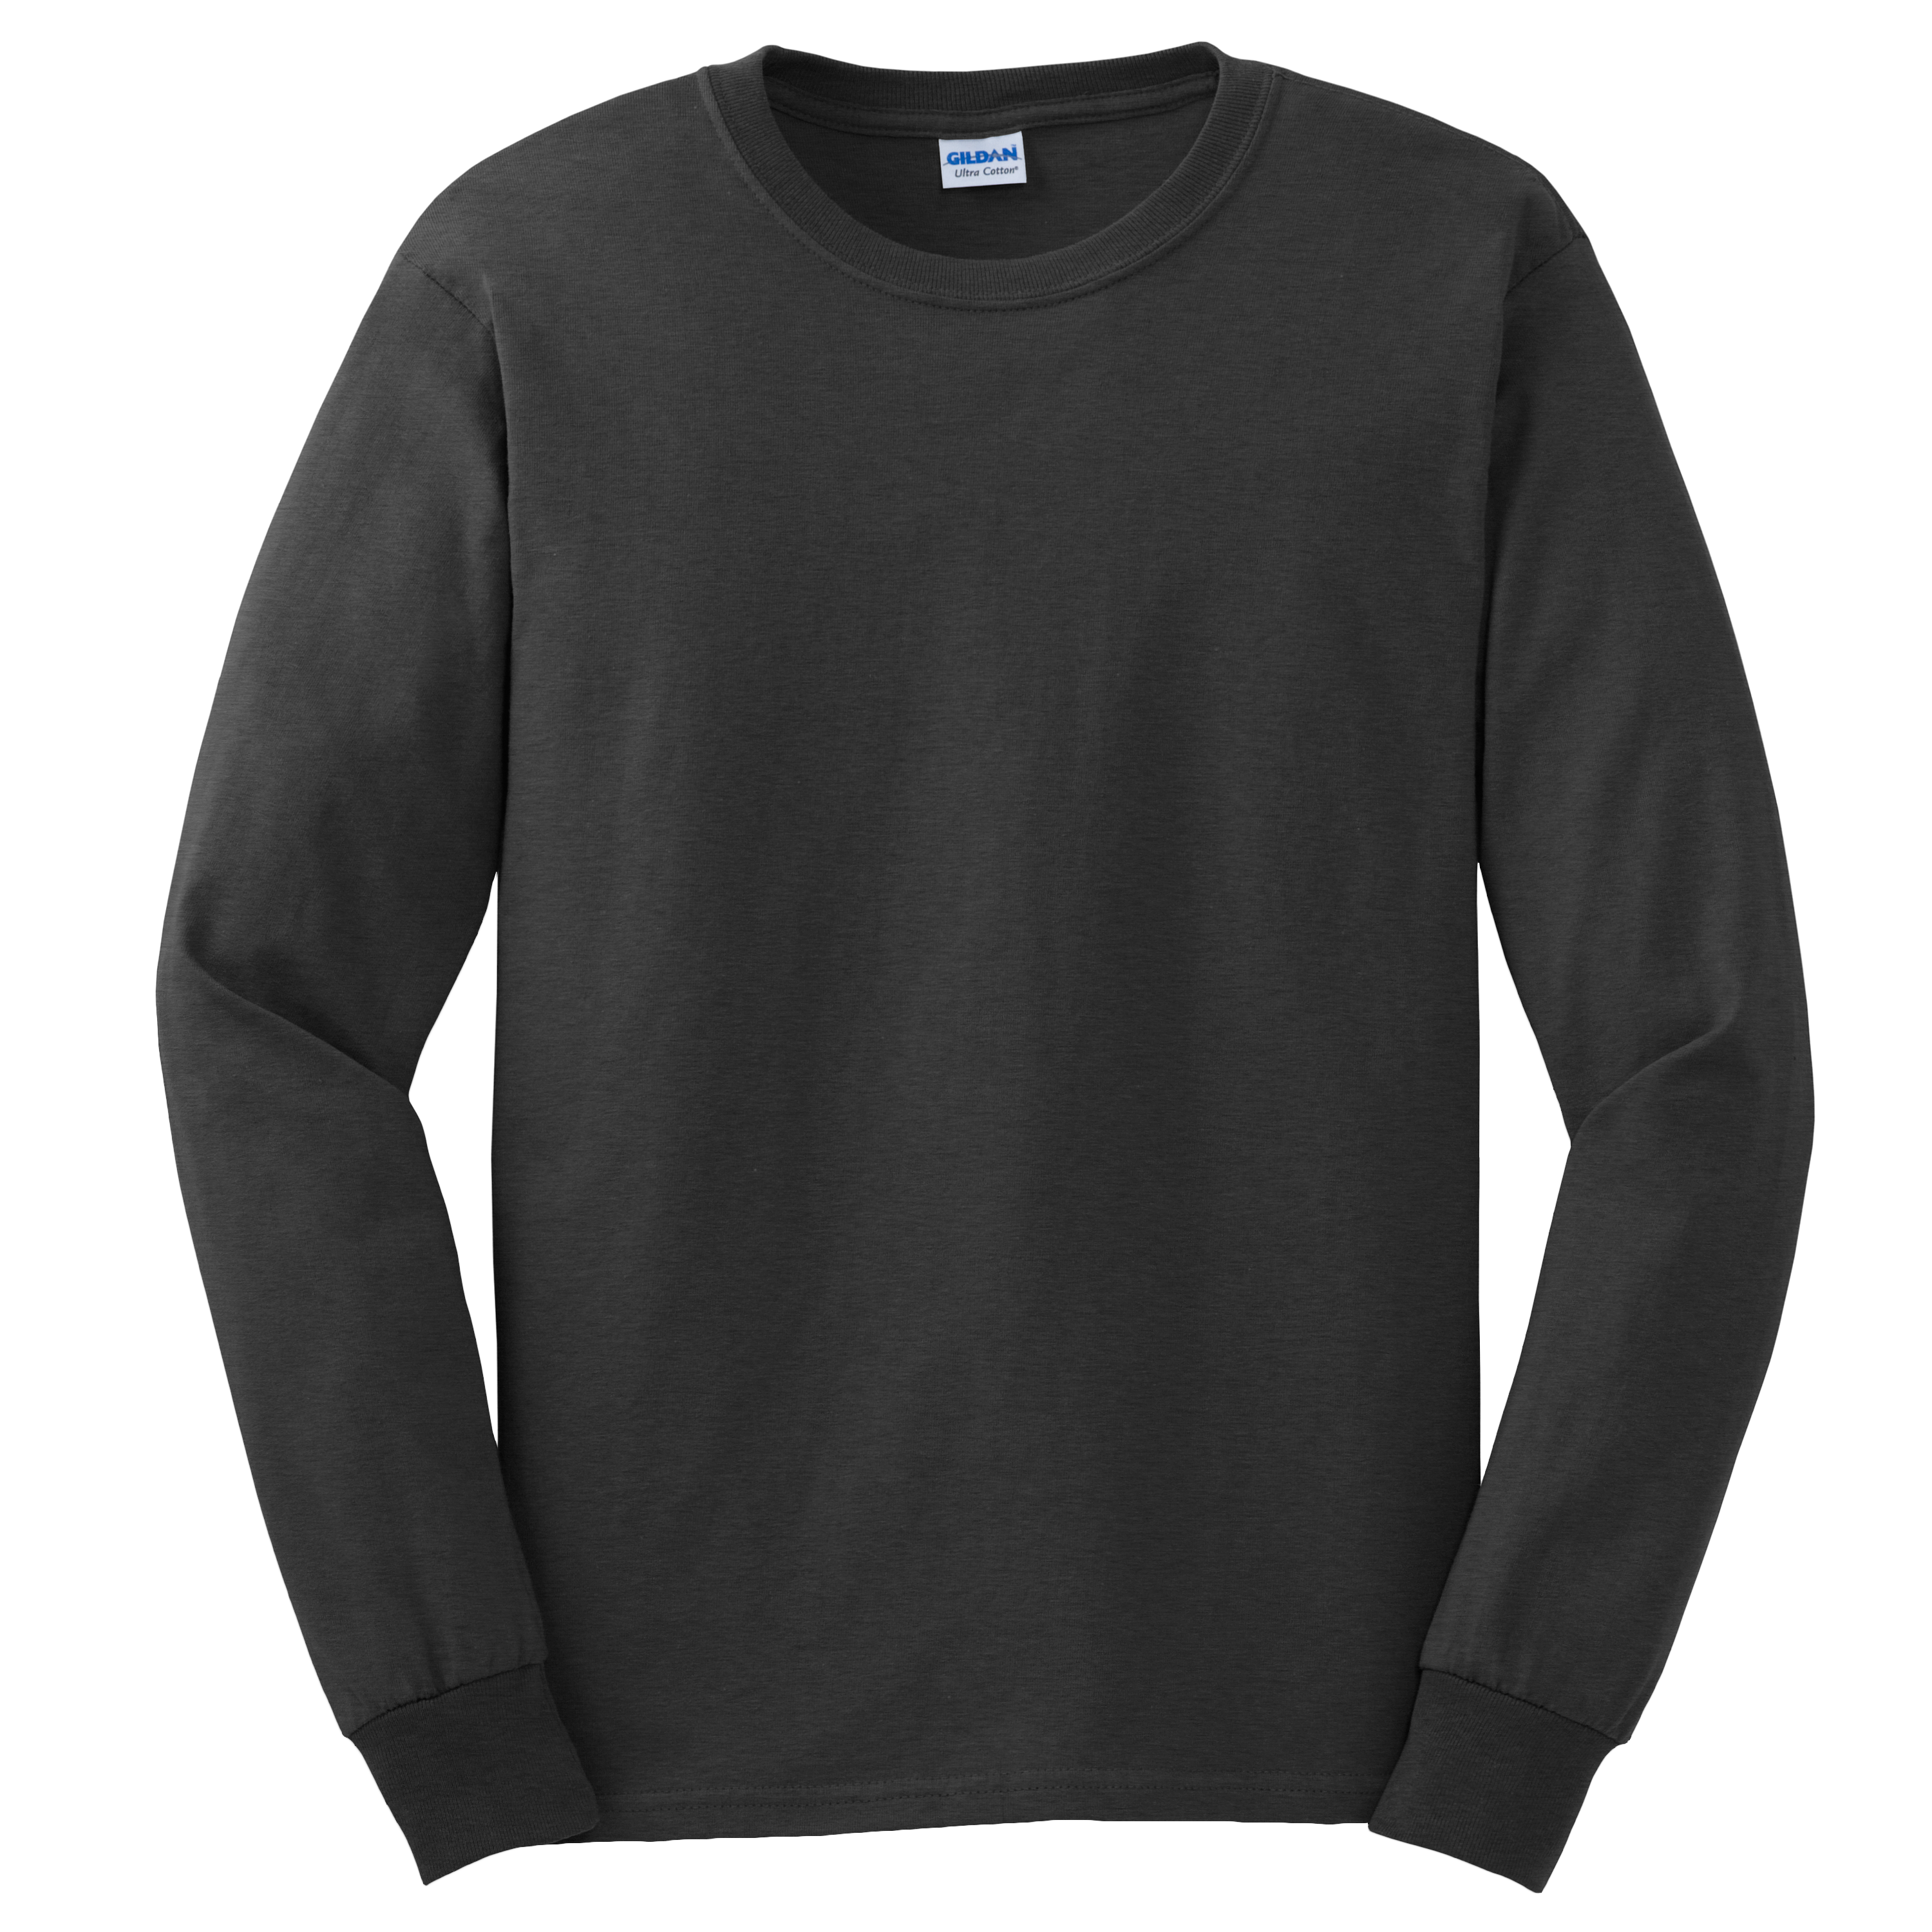 Ultra Cotton ® 100% Cotton Long Sleeve T Shirt - Central Screen ...